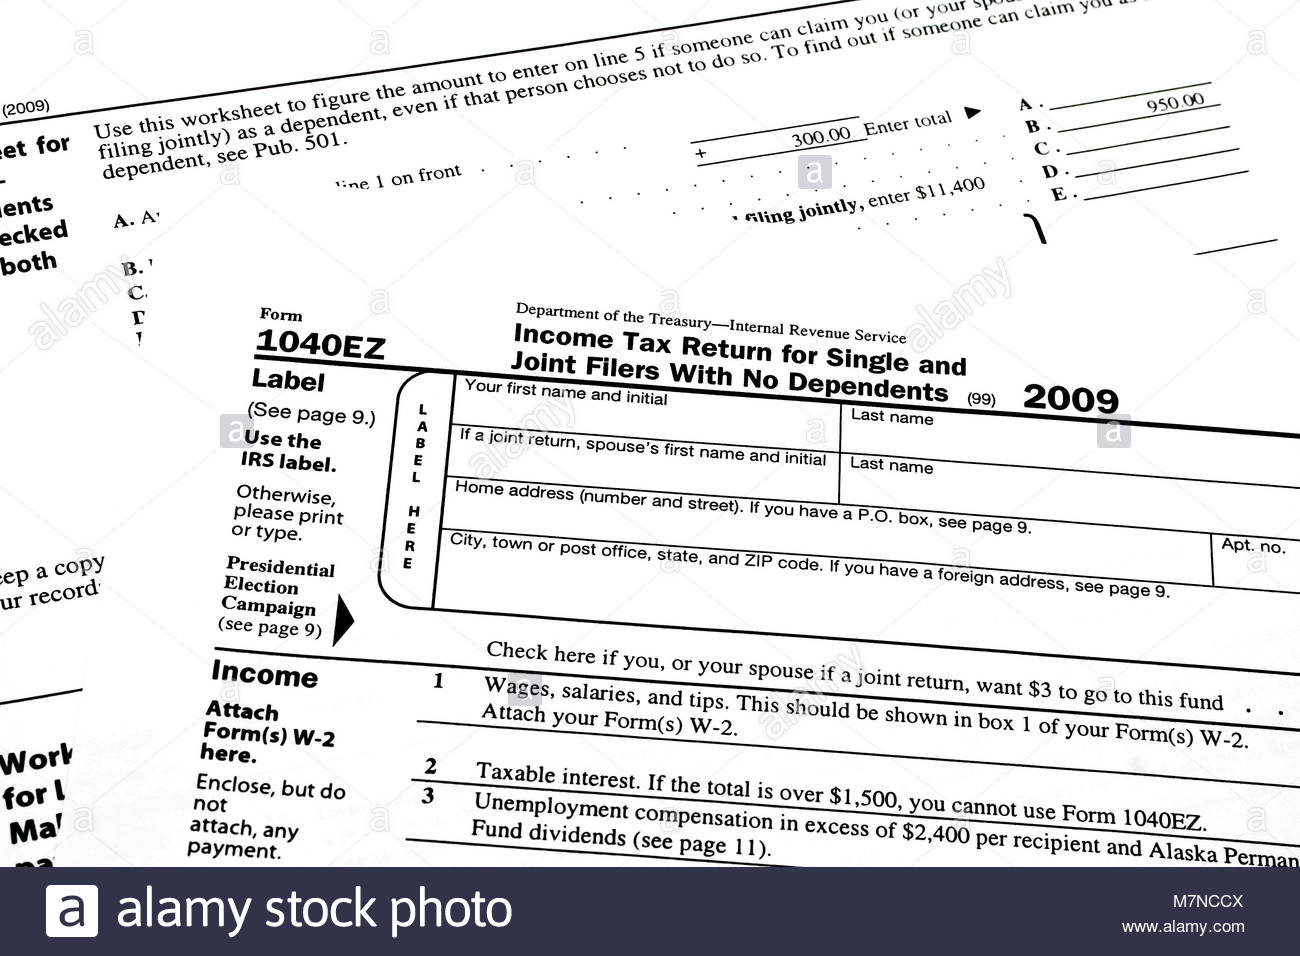 Where Can I Get A 1040ez Tax Form